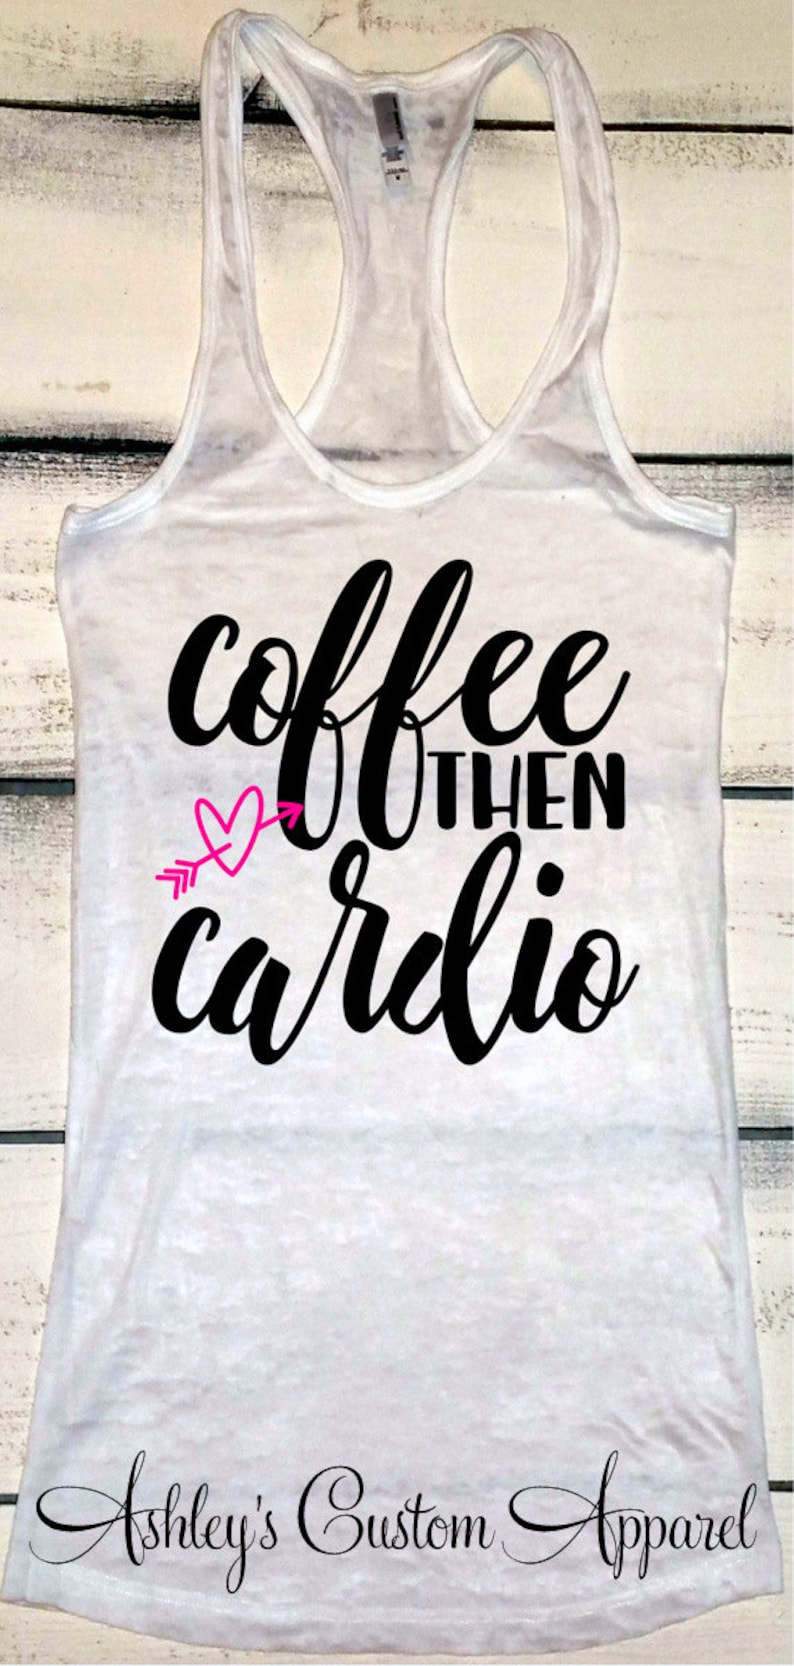 8bbdd72b3cfb7 Womens Fitness Tank Coffee and Cardio Funny Work Out Tank